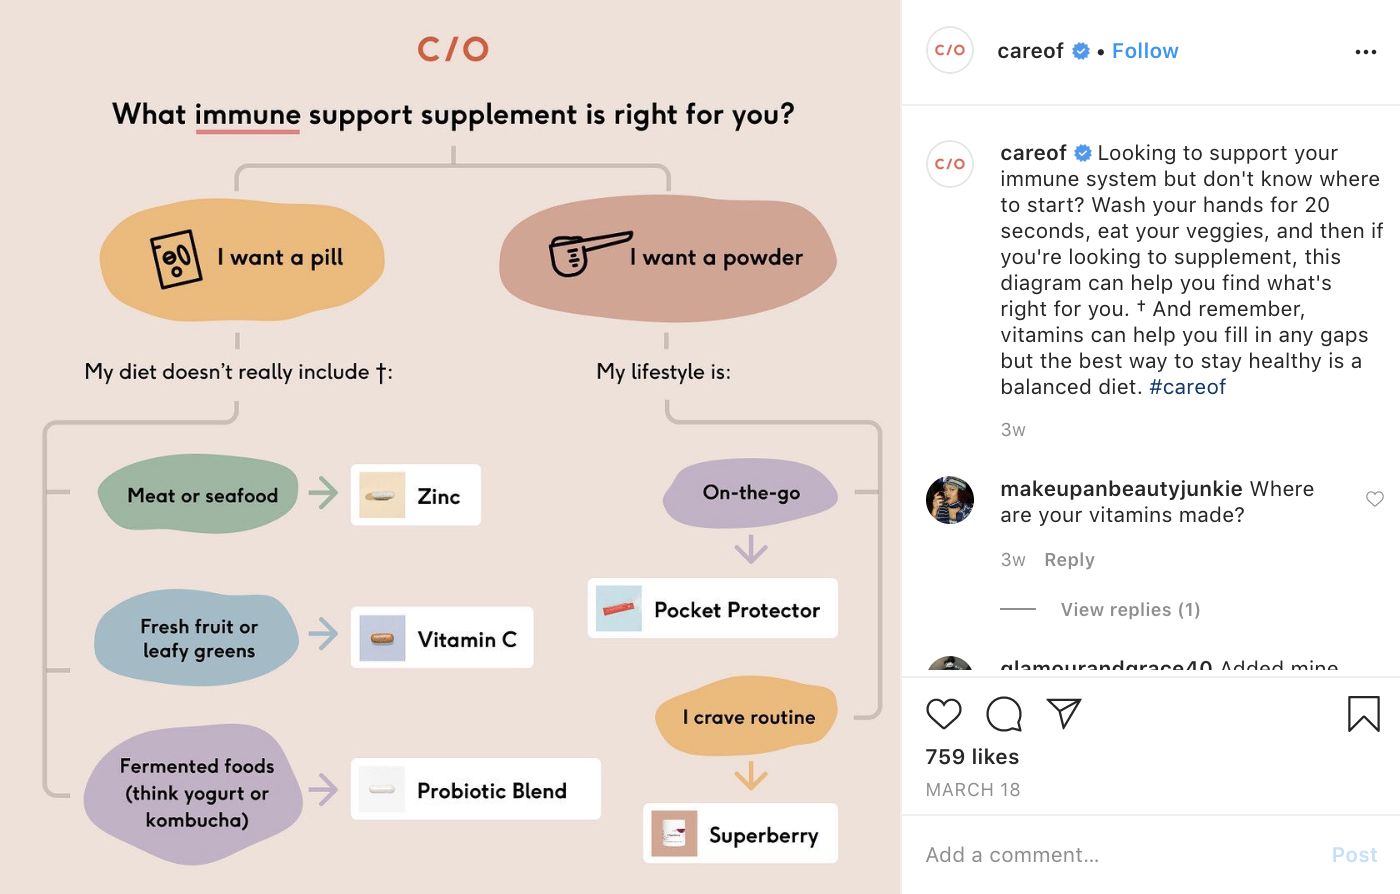 A Care/Of Instagram post educating followers on how to support their immune system with different vitamins and blends.